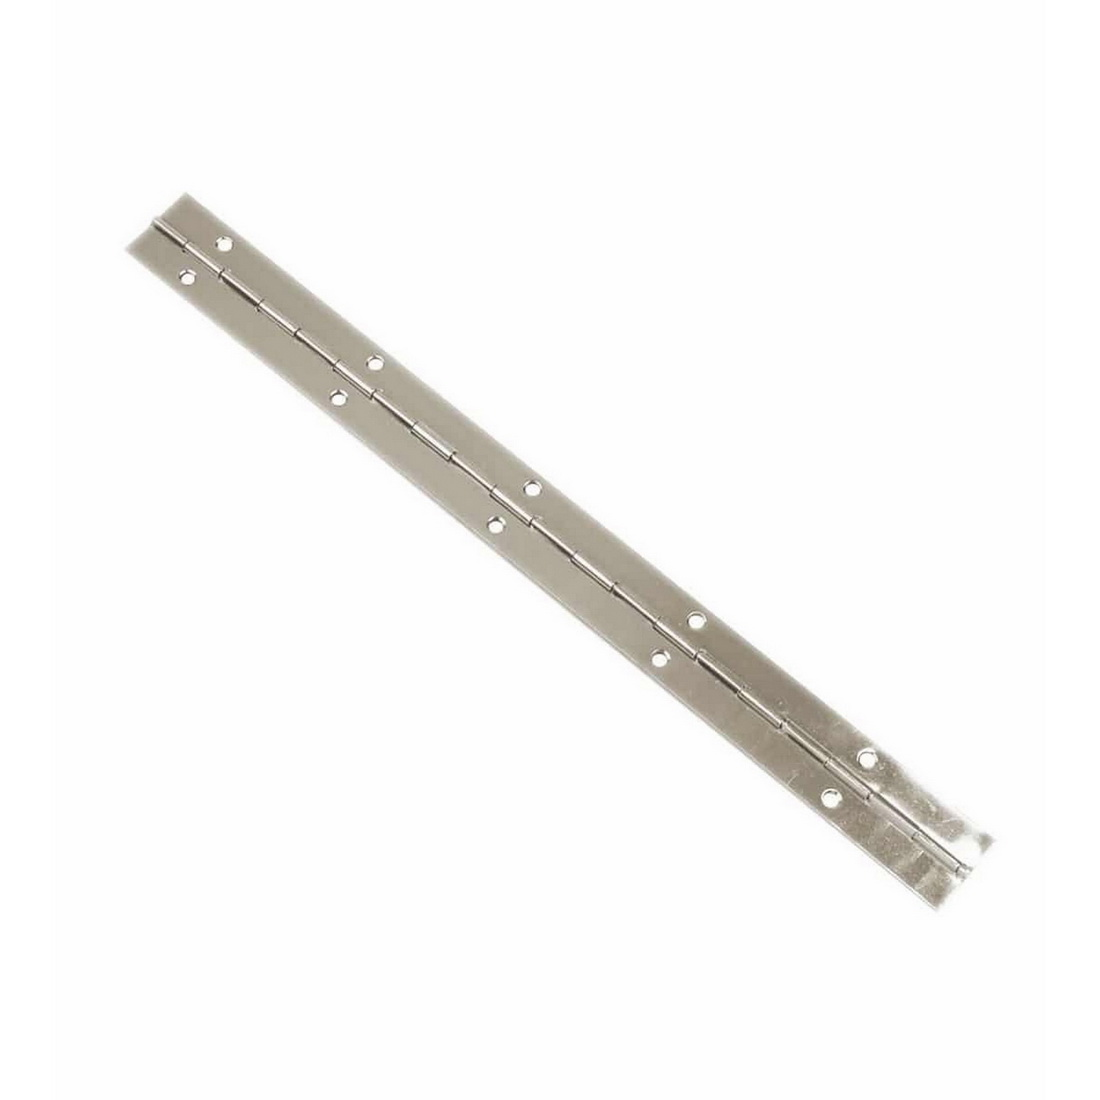 NU-AN Piano Hinge 1.8 m x 32 mm Steel Chrome Plated H32C/P